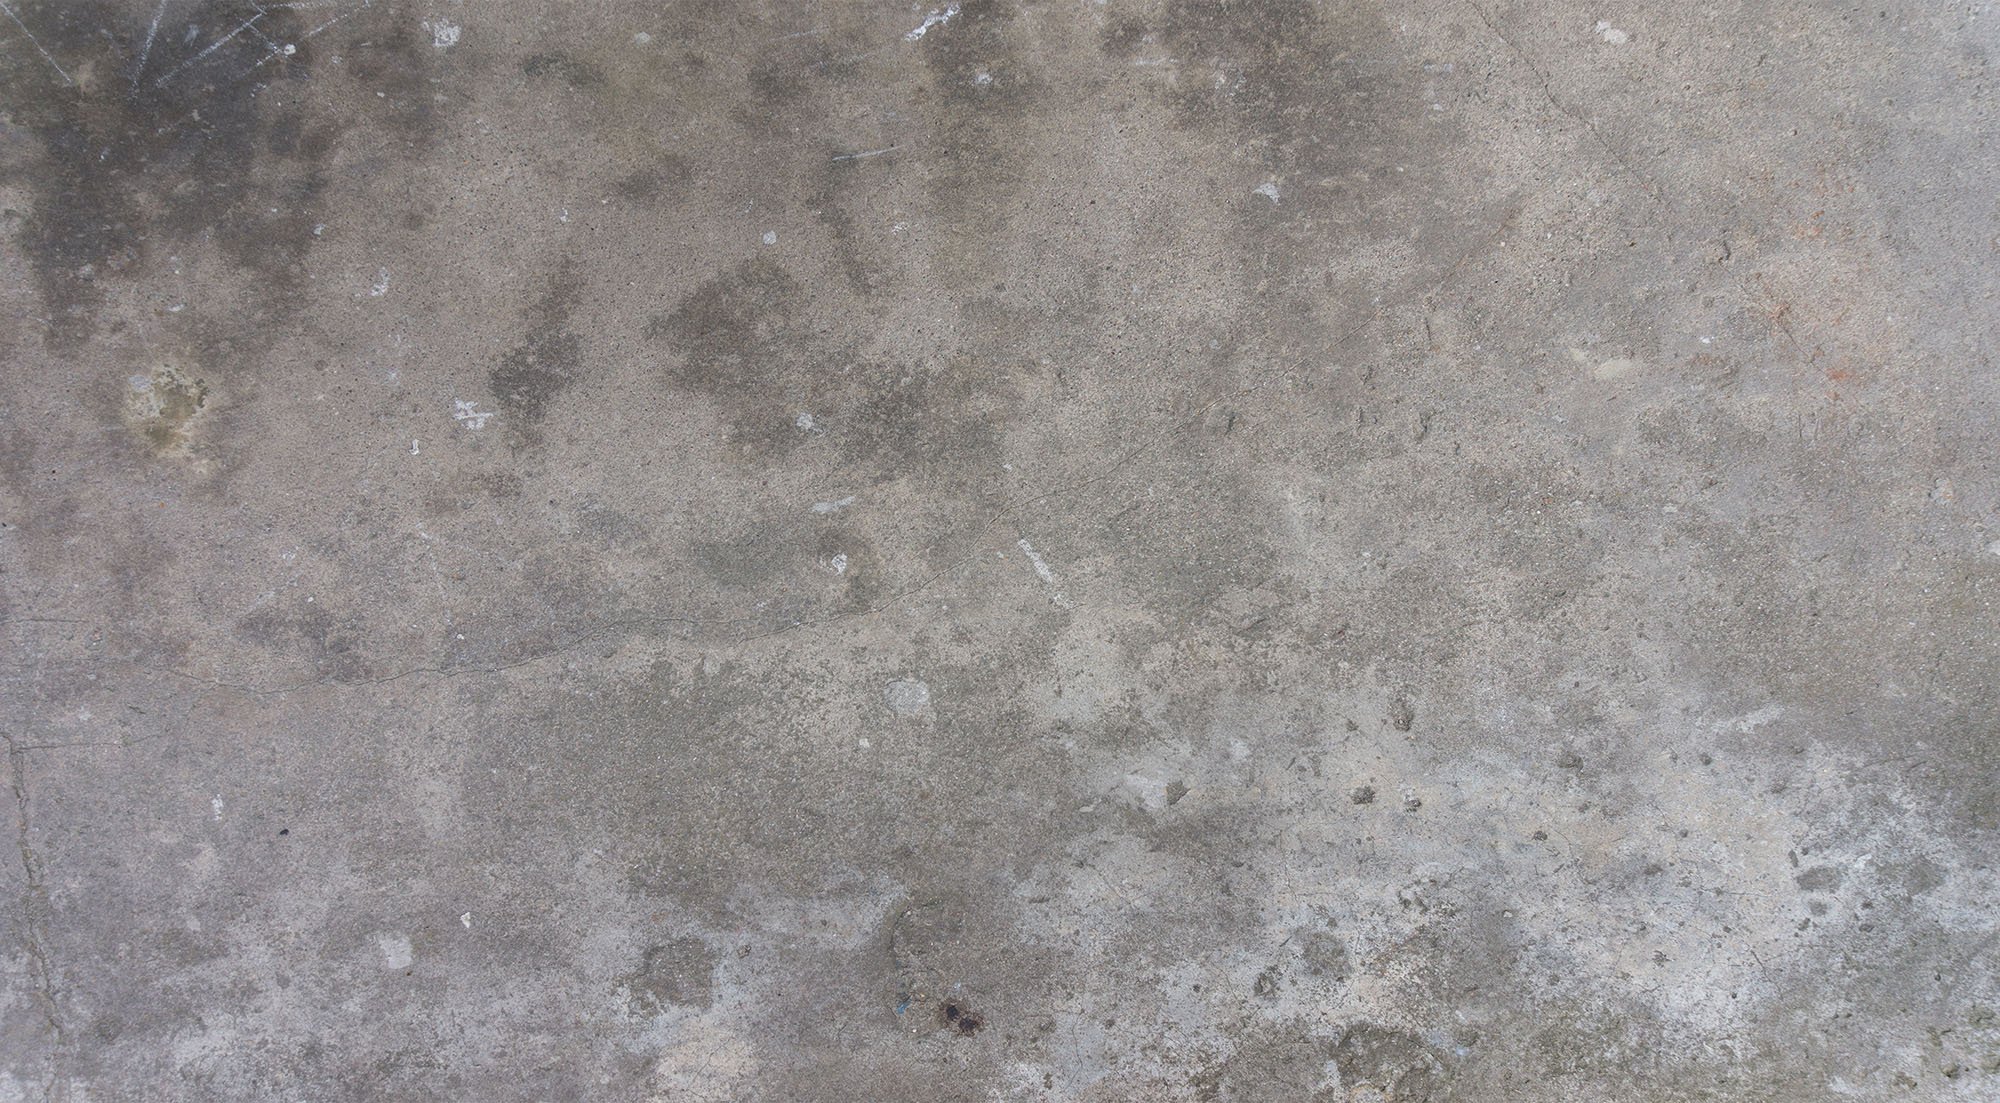 Concrete with discoloration including black spots.